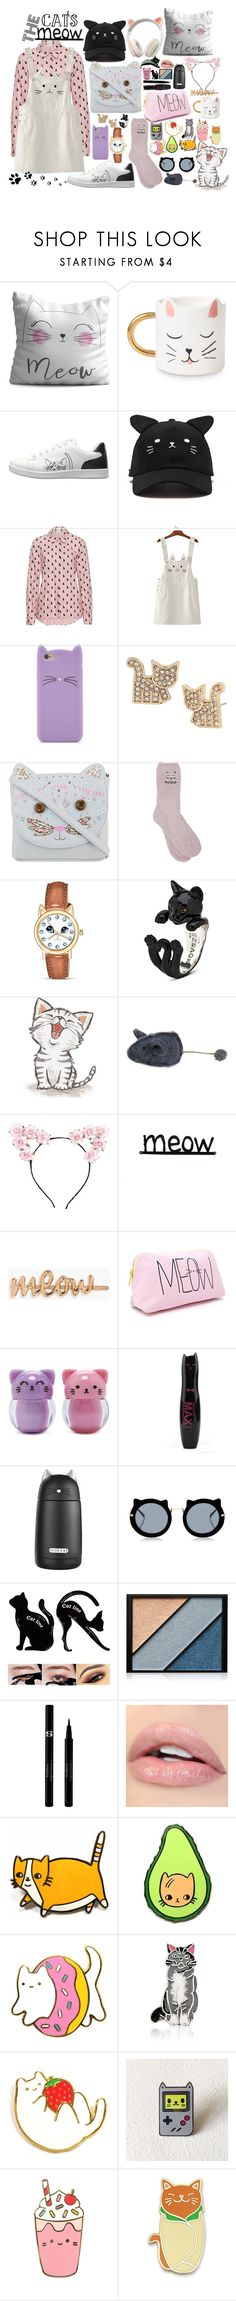 """""""The Cat's Meow"""" by alyson7123 ❤ liked on Polyvore featuring Oyo Home, ED Ellen DeGeneres, Forever 21, Betsey Johnson, Monsoon, M&Co, The Bradford Exchange, Lulu in the Sky, Boohoo and Elizabeth Arden"""